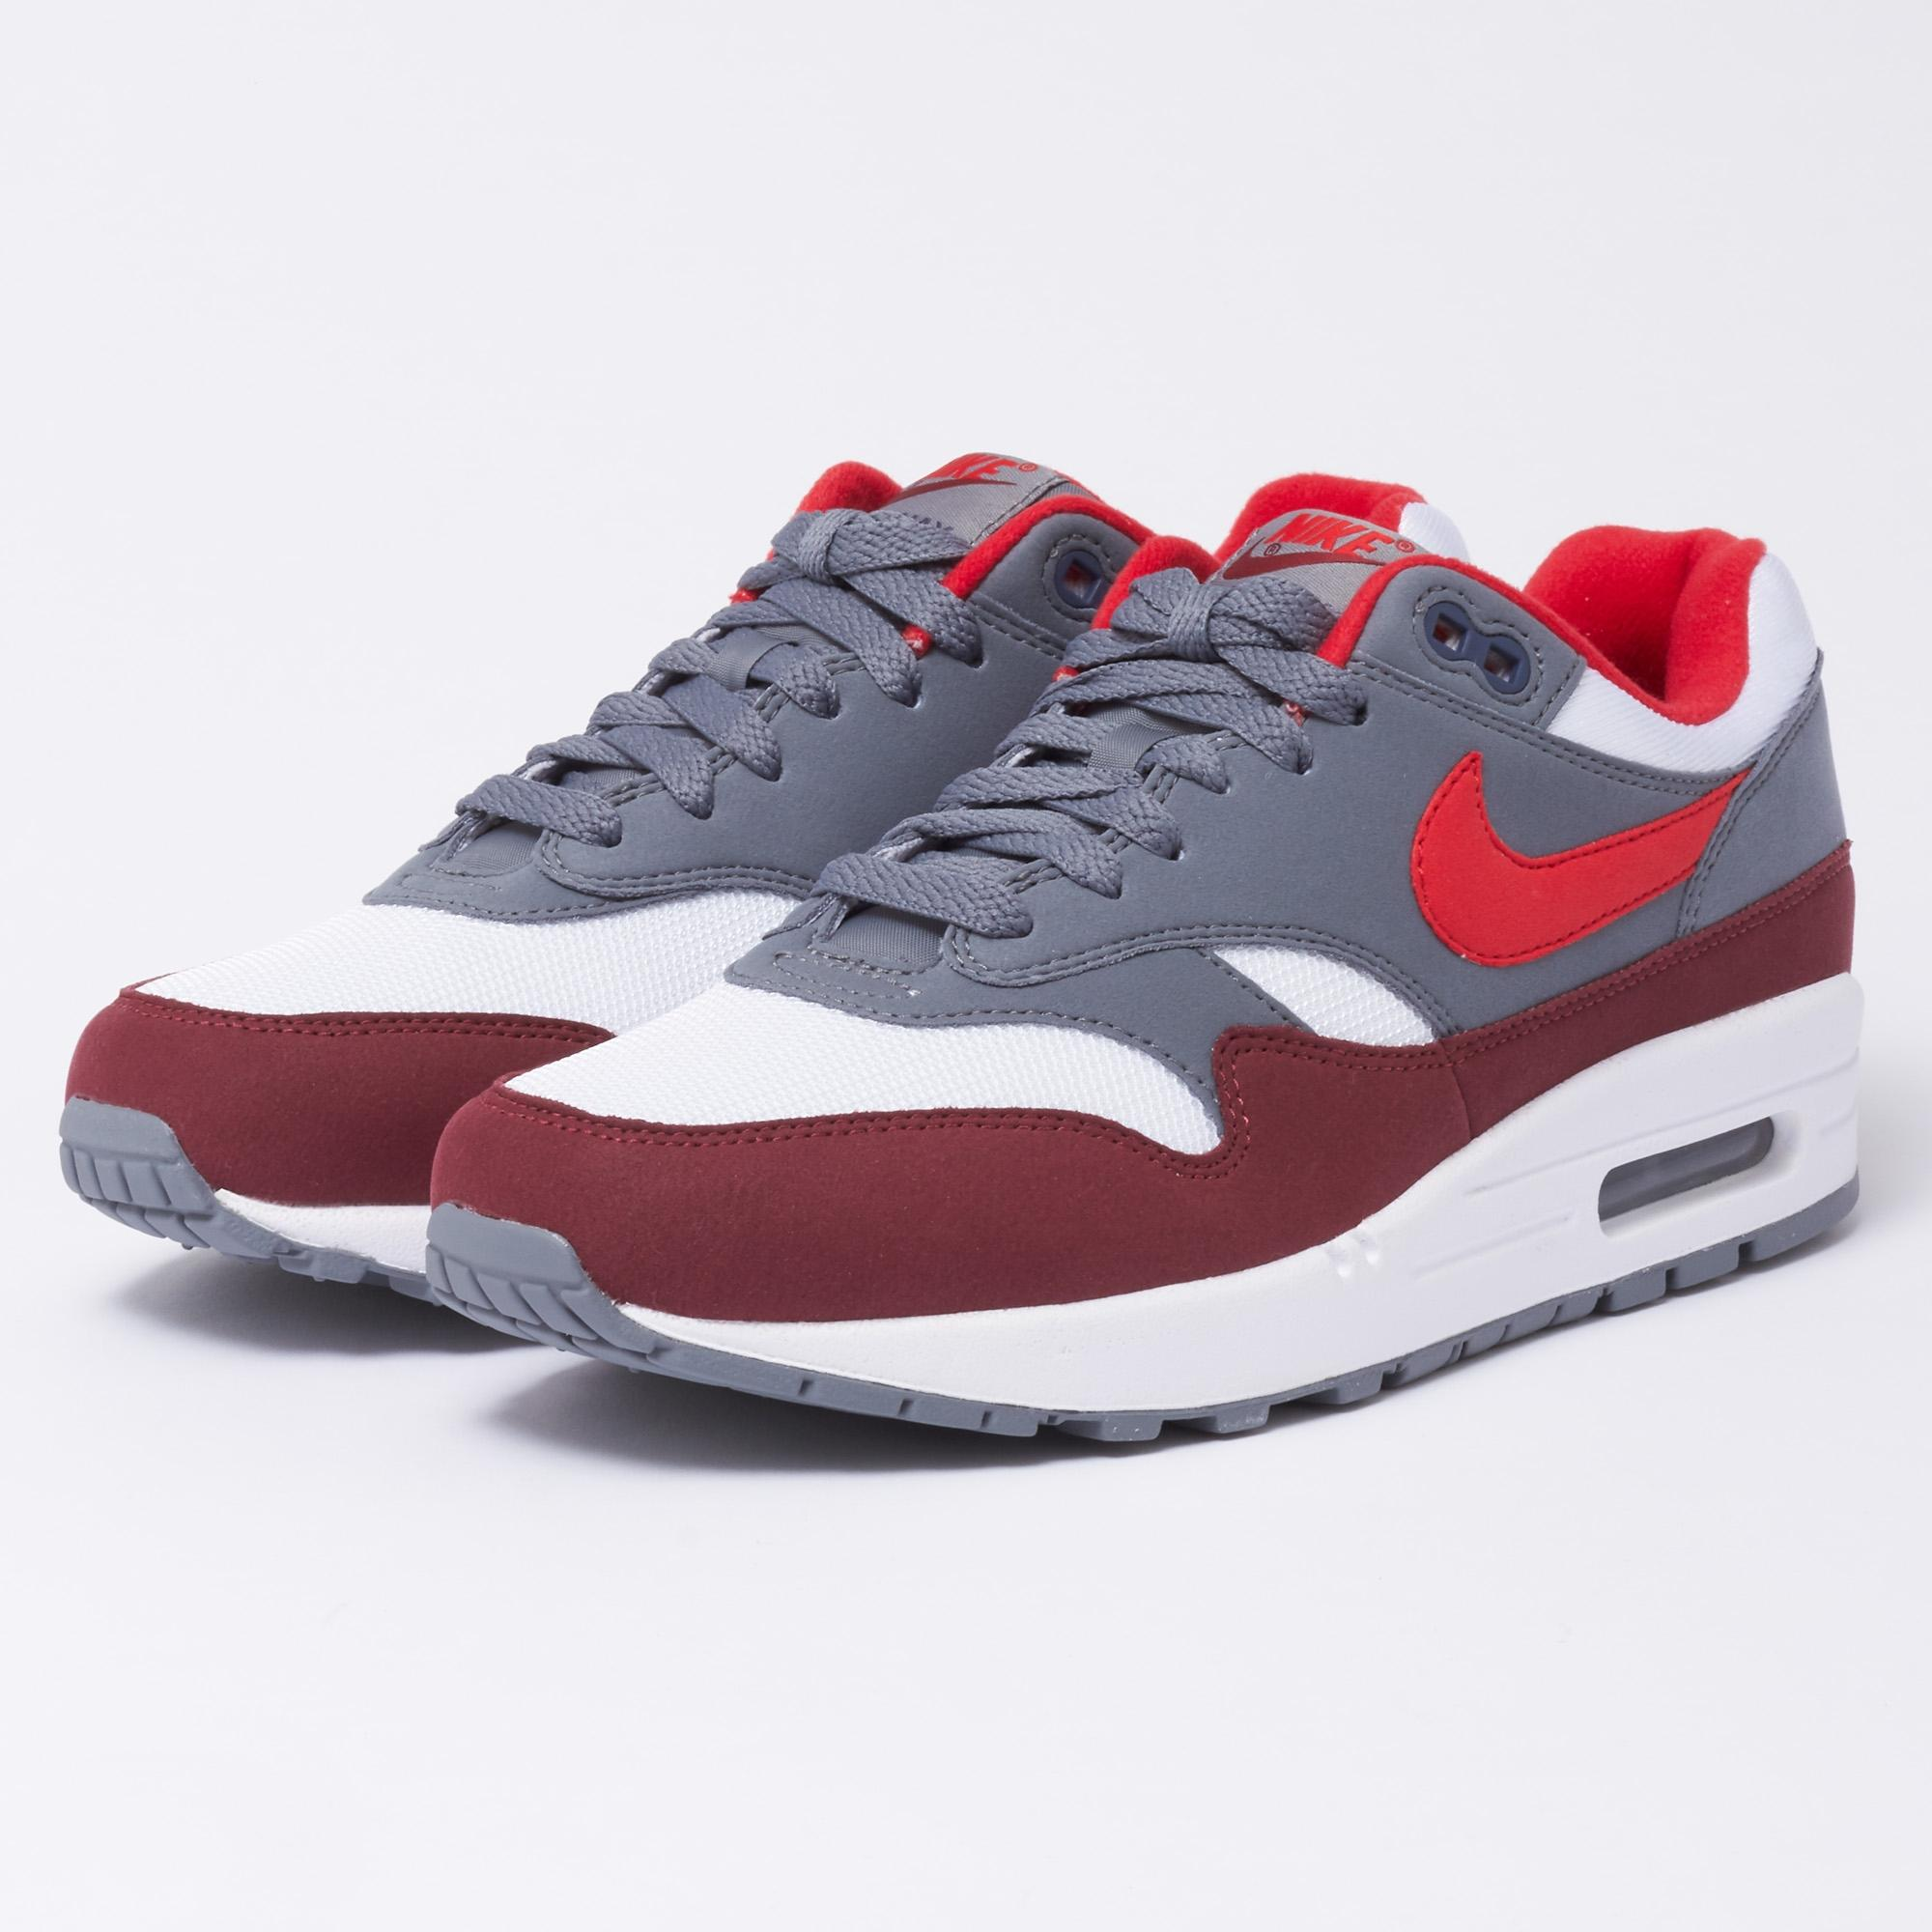 590778c3367 Lyst - Nike Air Max 1 - White   University Red in White for Men ...